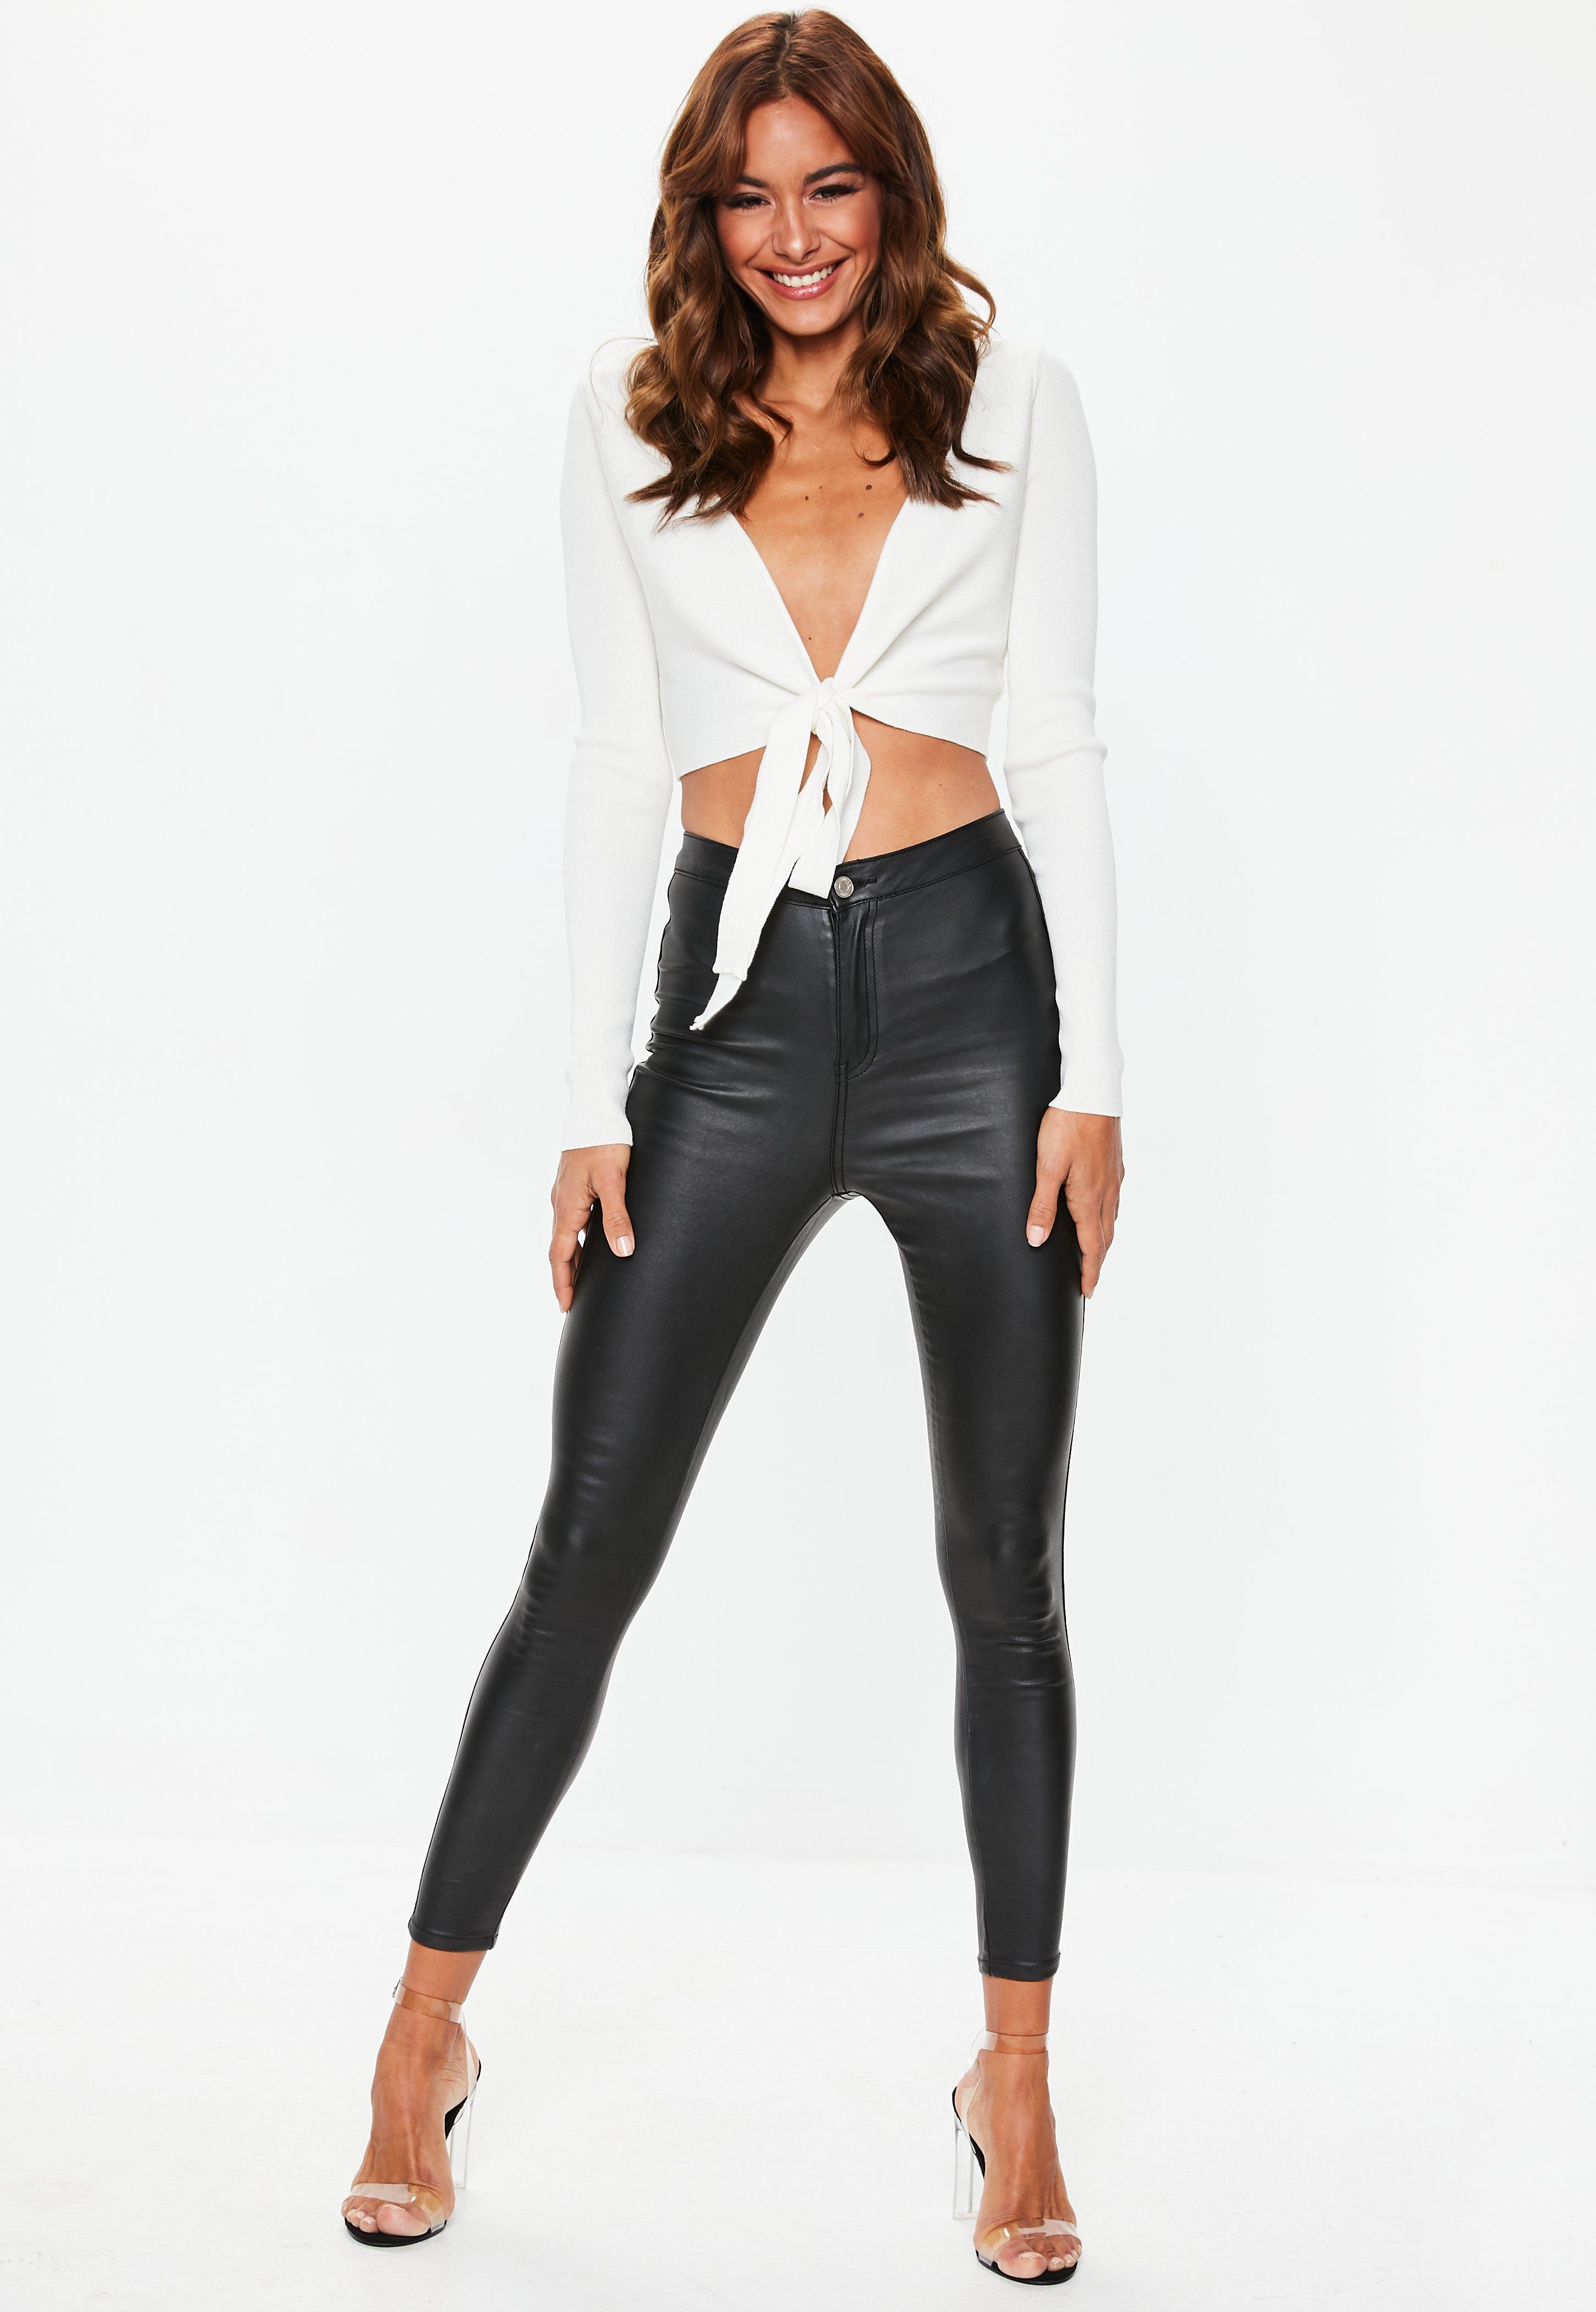 77cda102ffdbb Missguided - Multicolor Cream Tie Front Long Sleeve Knitted Crop Top - Lyst.  View fullscreen